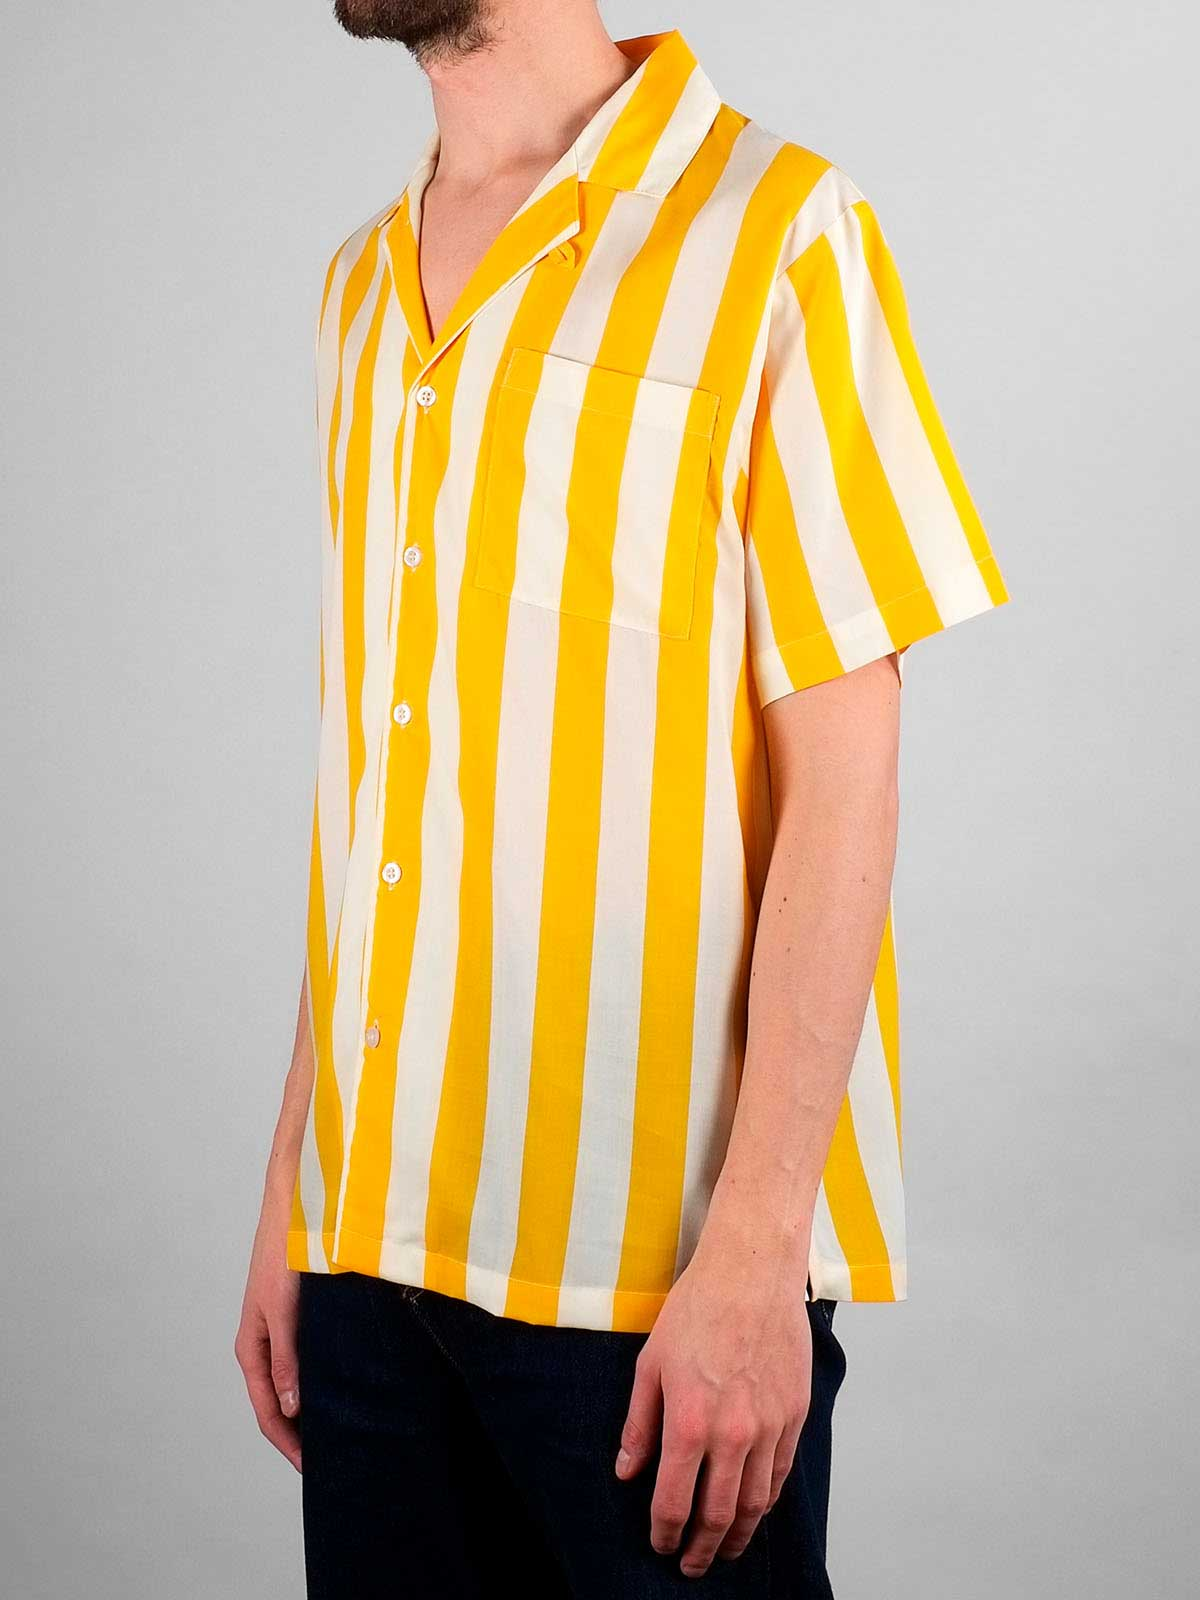 Marstrand Big Stripes - Yellow